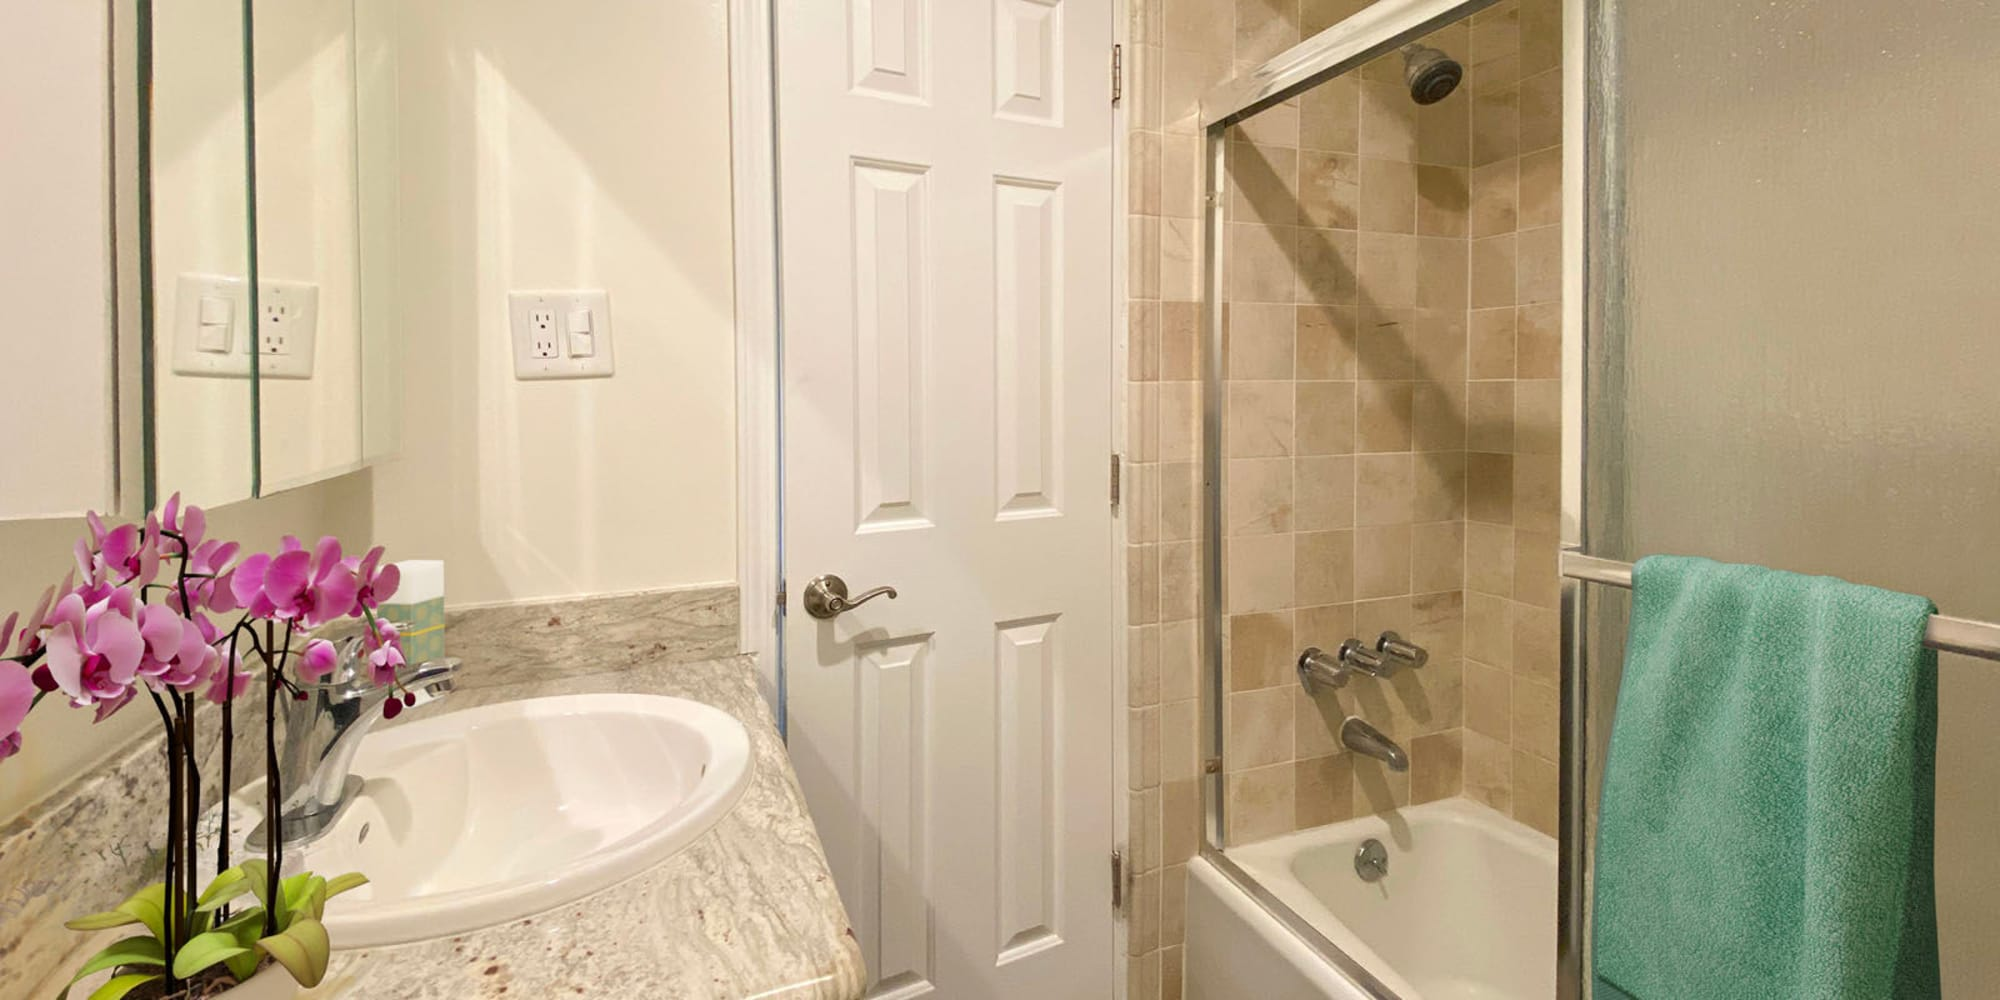 Tiled shower and a granite countertop in a model home's bathroom at Mediterranean Village in West Hollywood, California